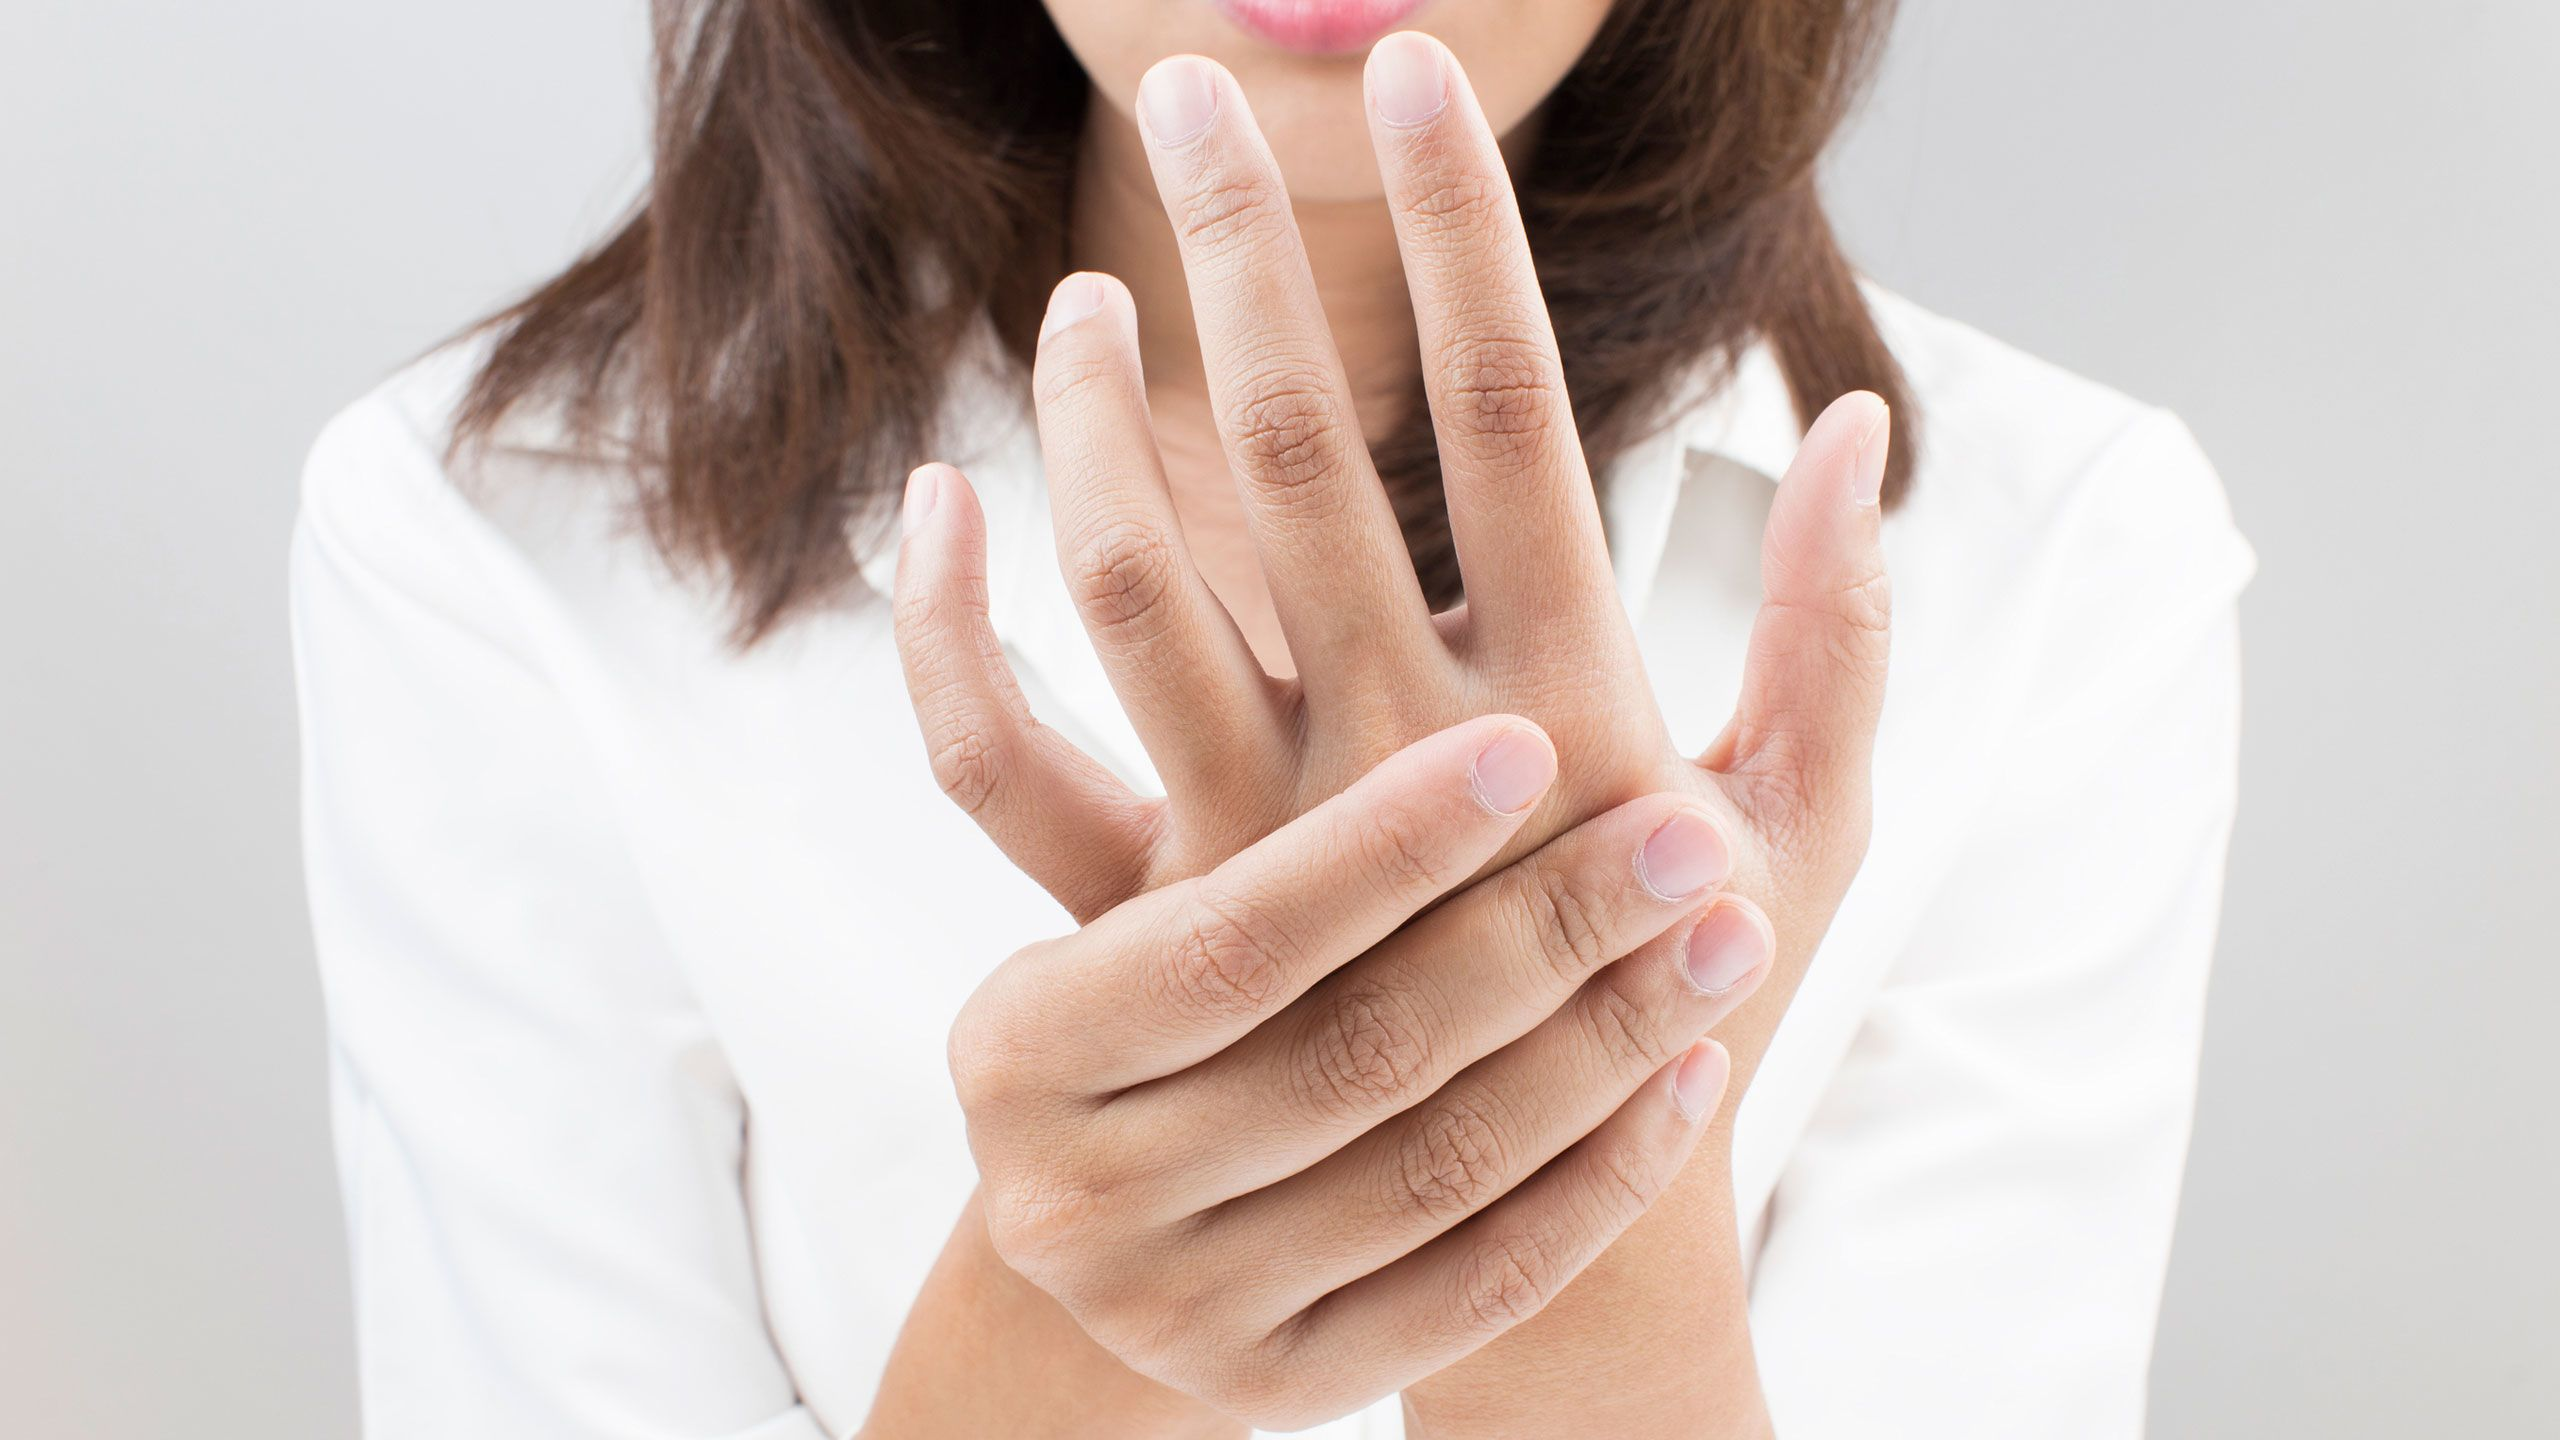 Are you at risk for rheumatoid arthritis